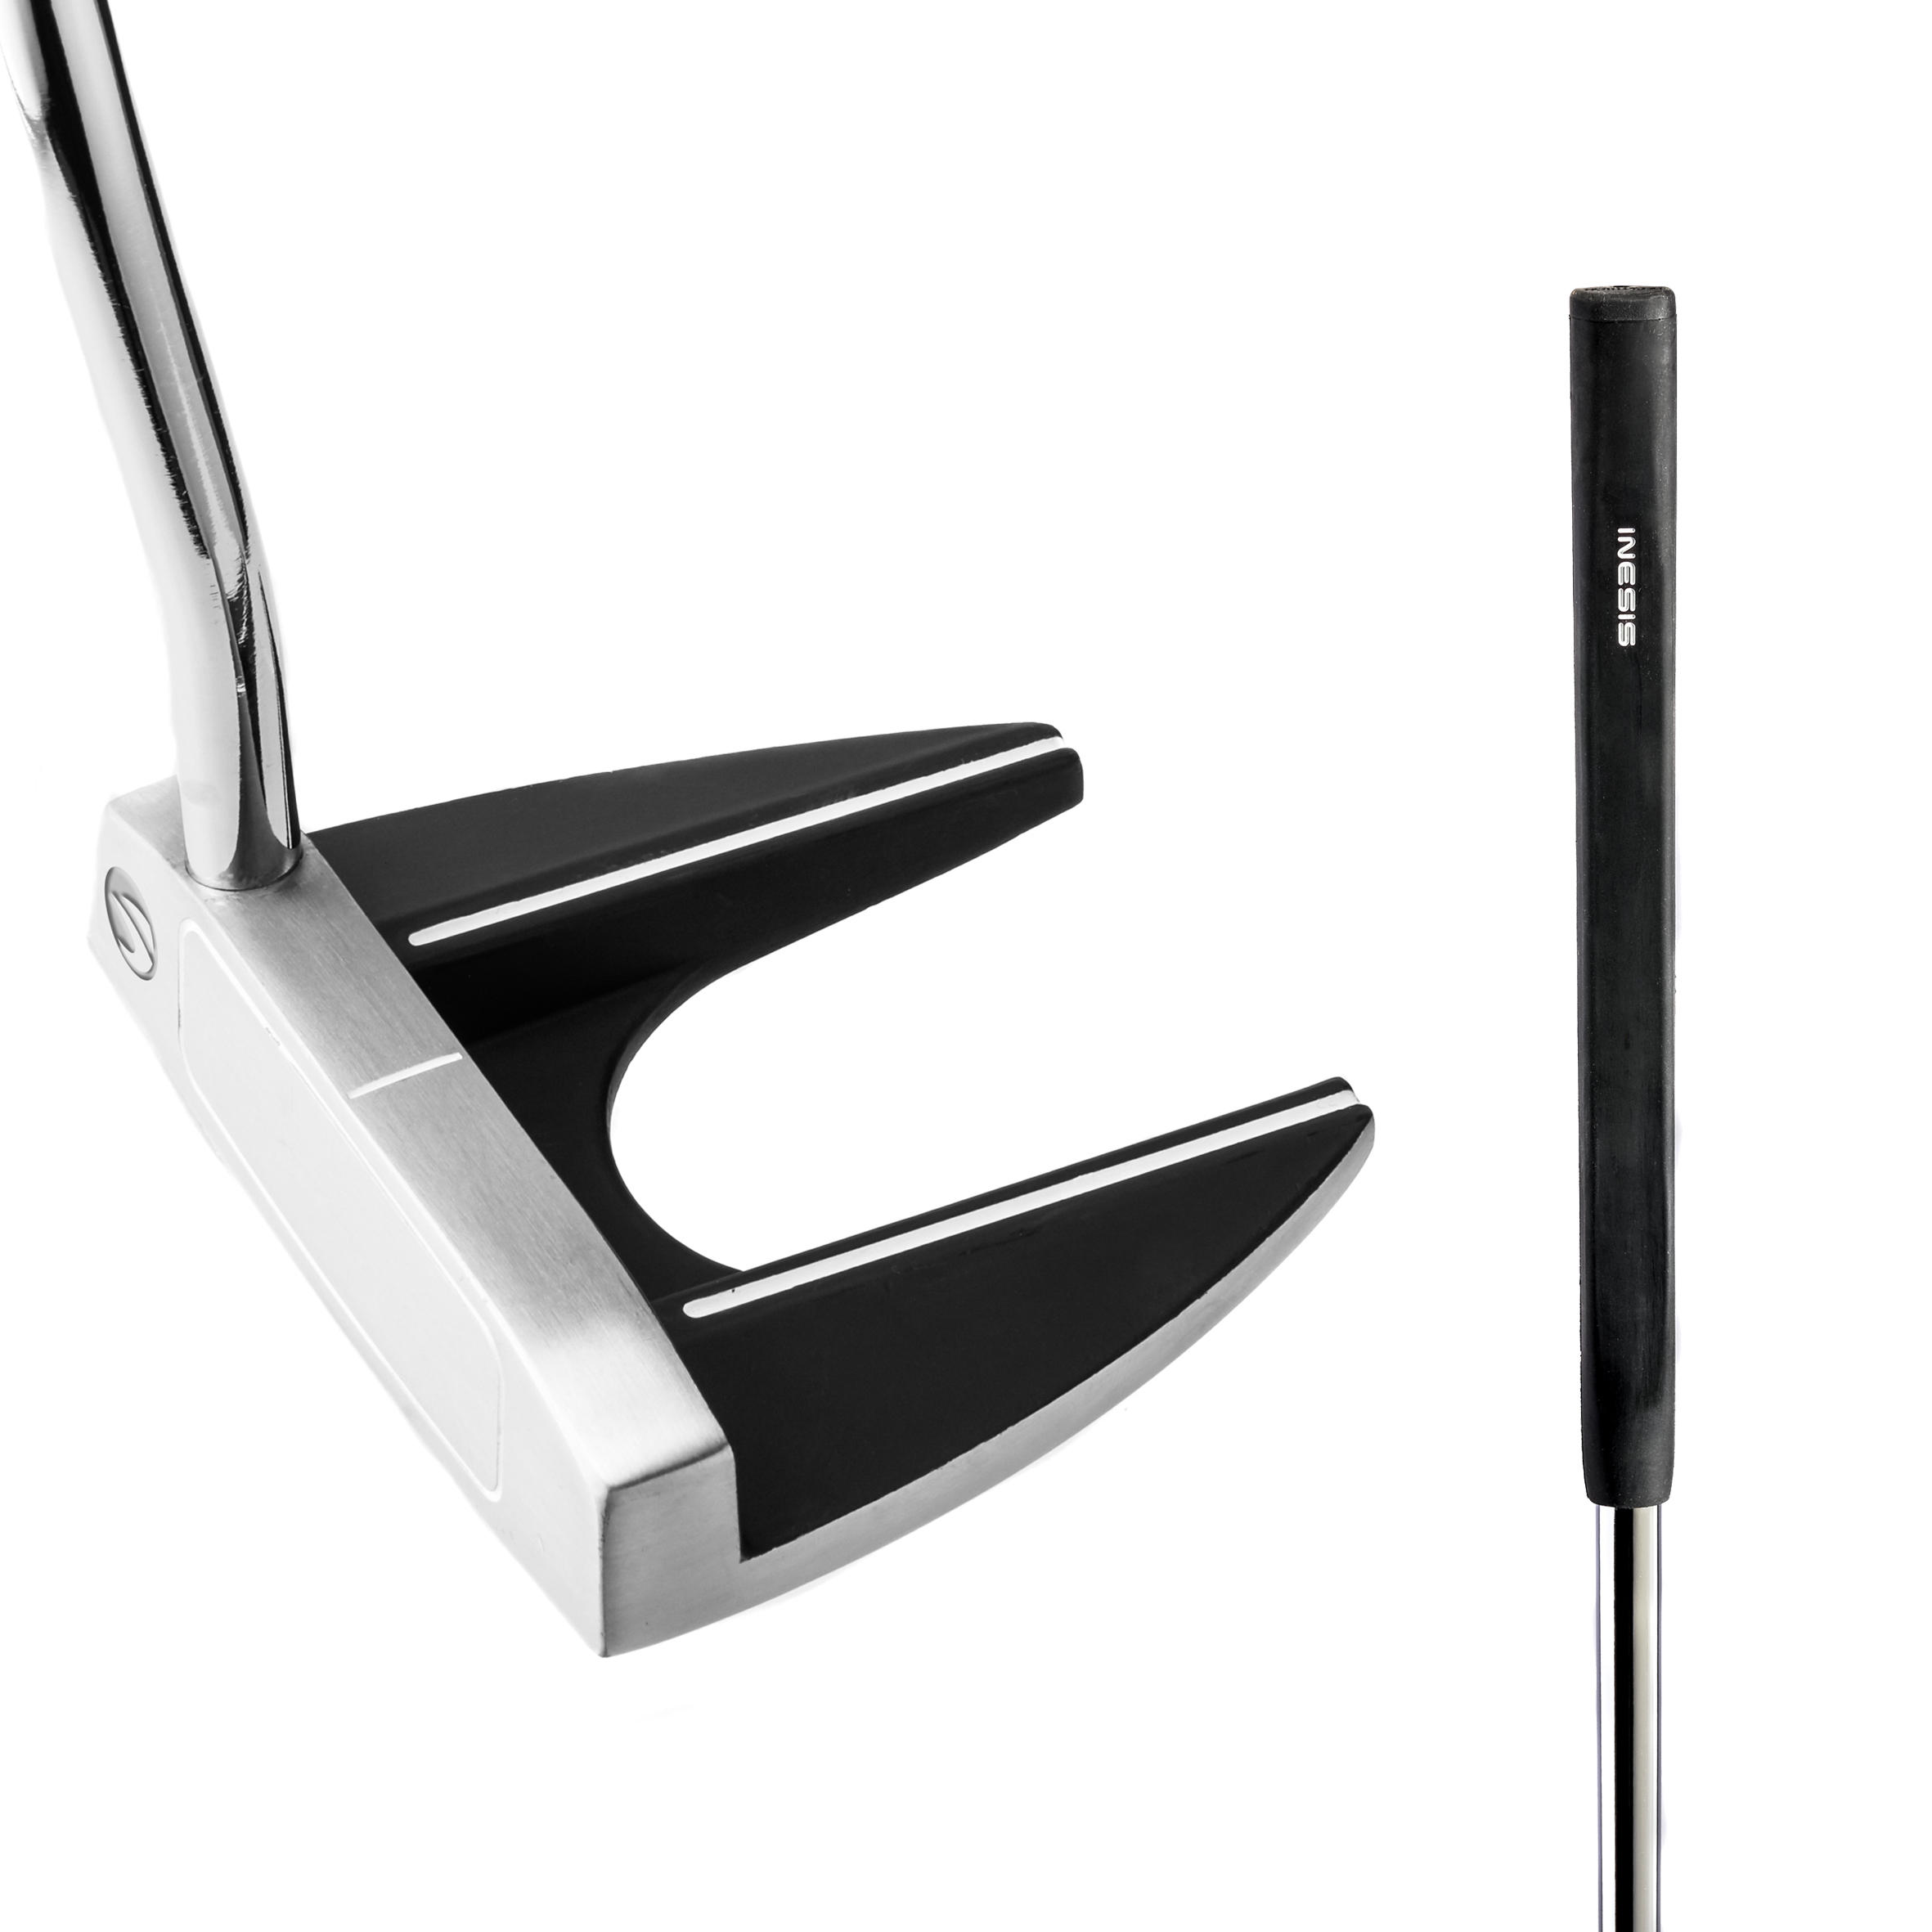 FER DROIT DE GOLF ADULTE GAUCHER 100 34""